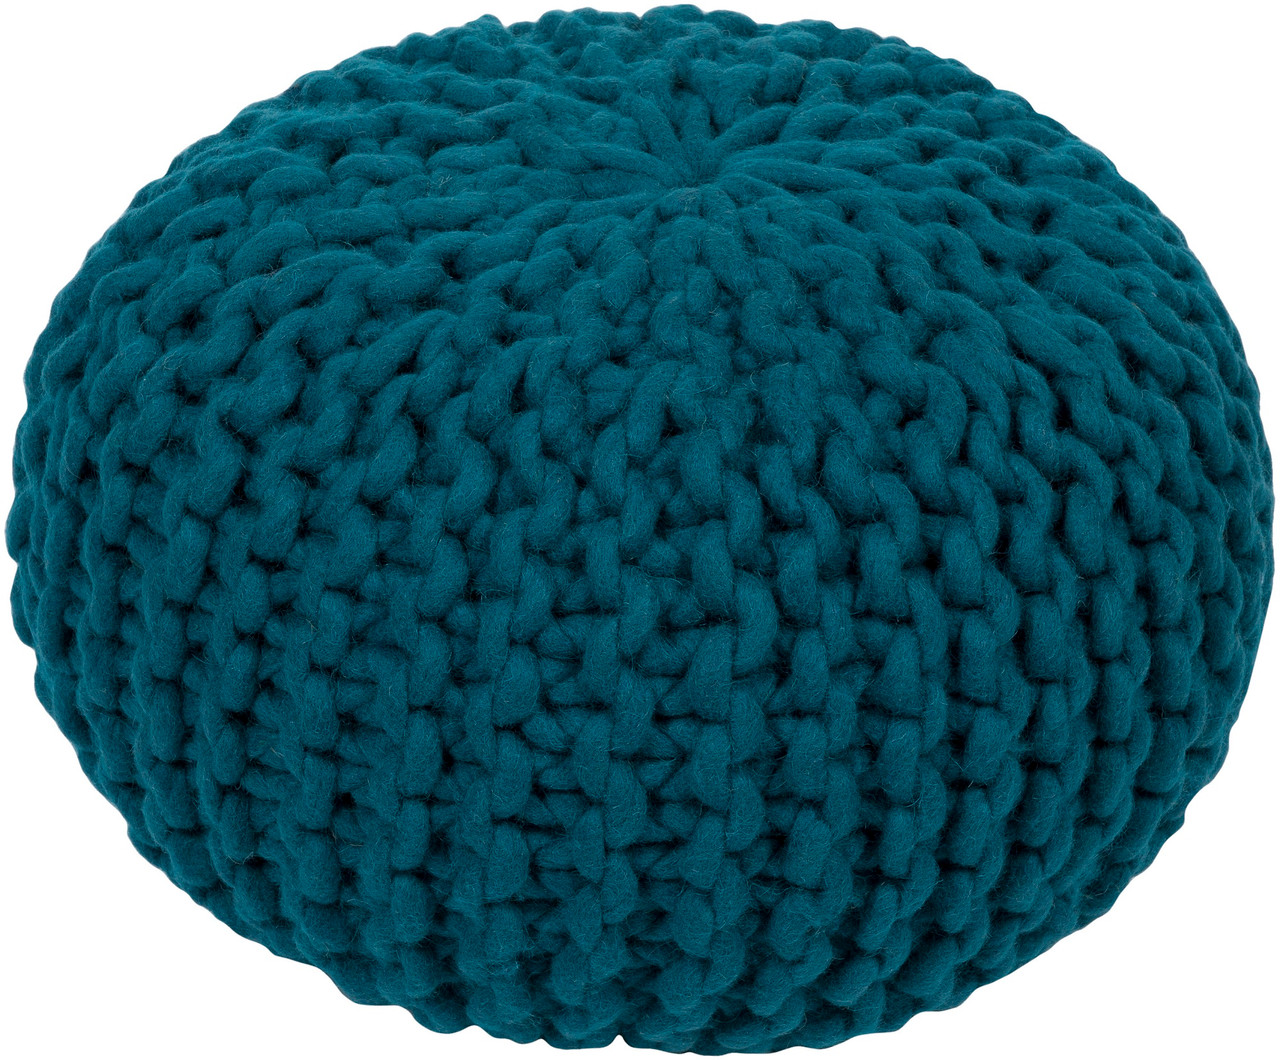 20 Teal Crochet Pattern Knitted Decorative Indoor Oval Pouf Ottoman